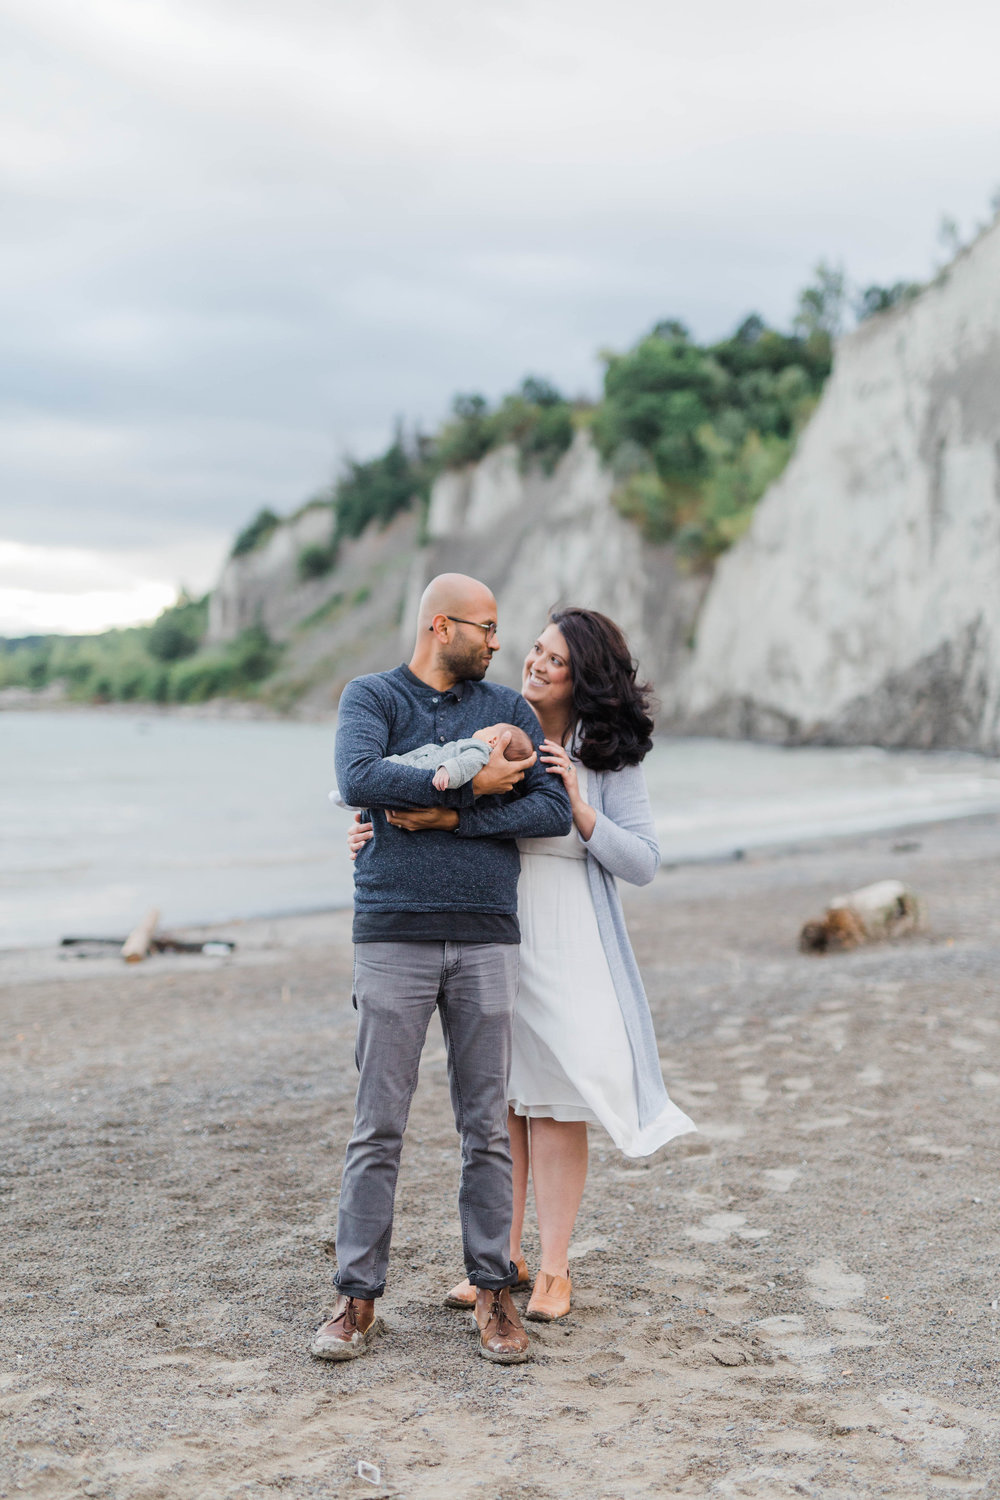 Danielle-Giroux_Lindsay-Sunil_Newborn-Session_Scarborough-Bluffs_-0076.jpg